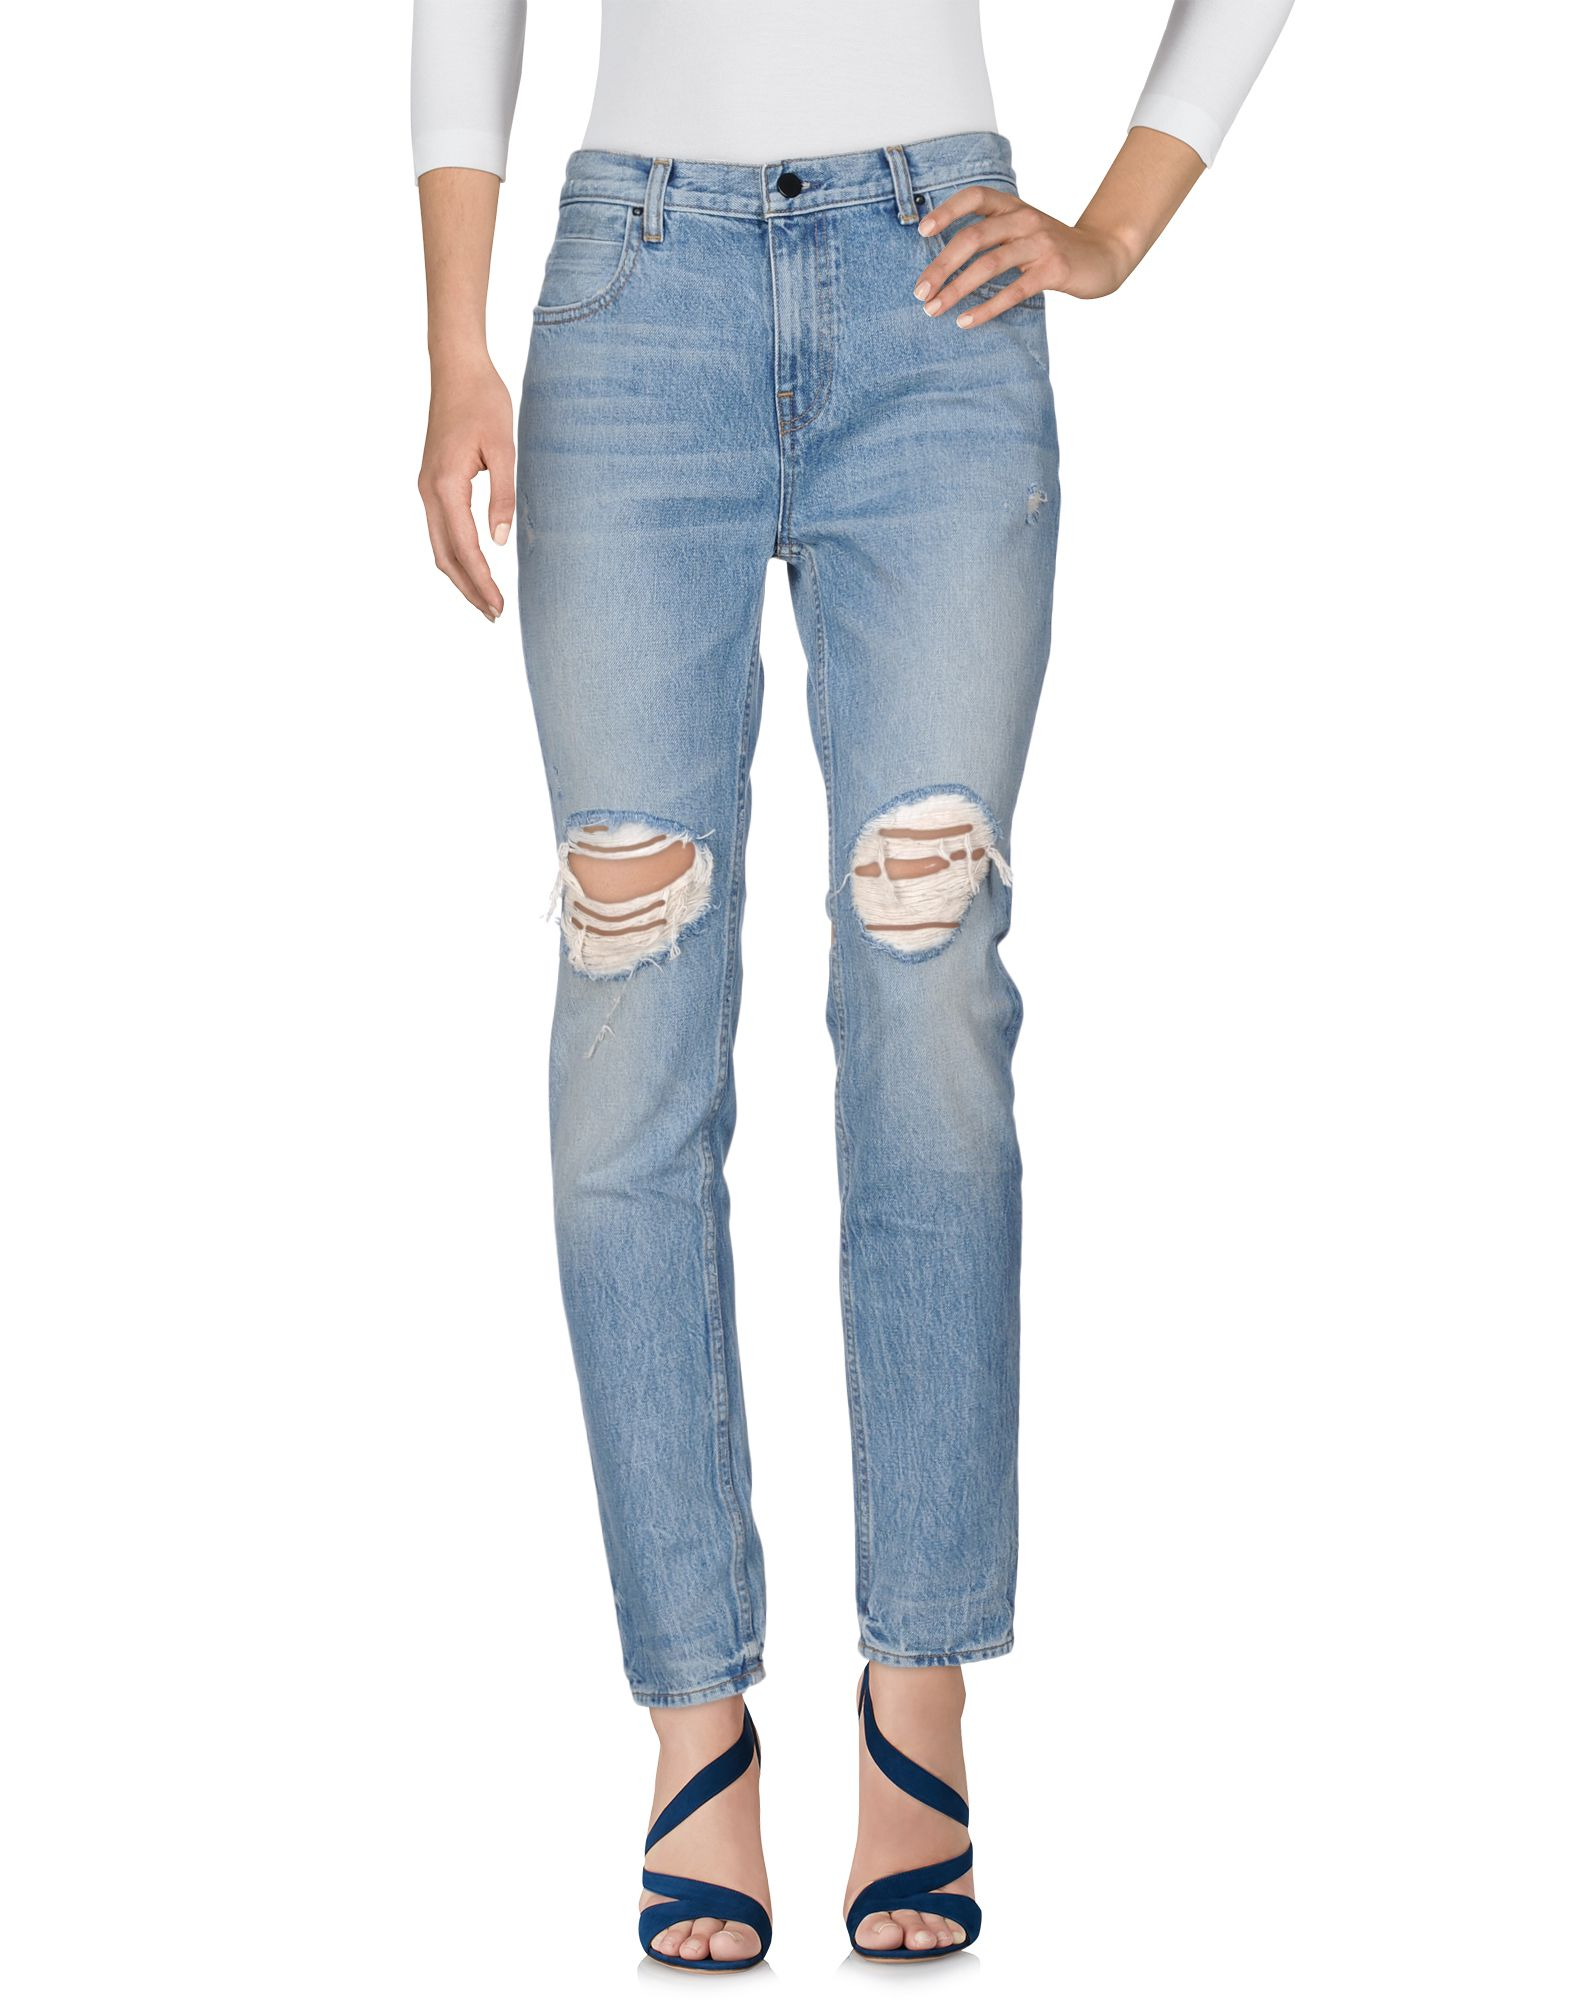 Pantaloni Jeans Alexander Wang Donna - Acquista online su mMEs40N7